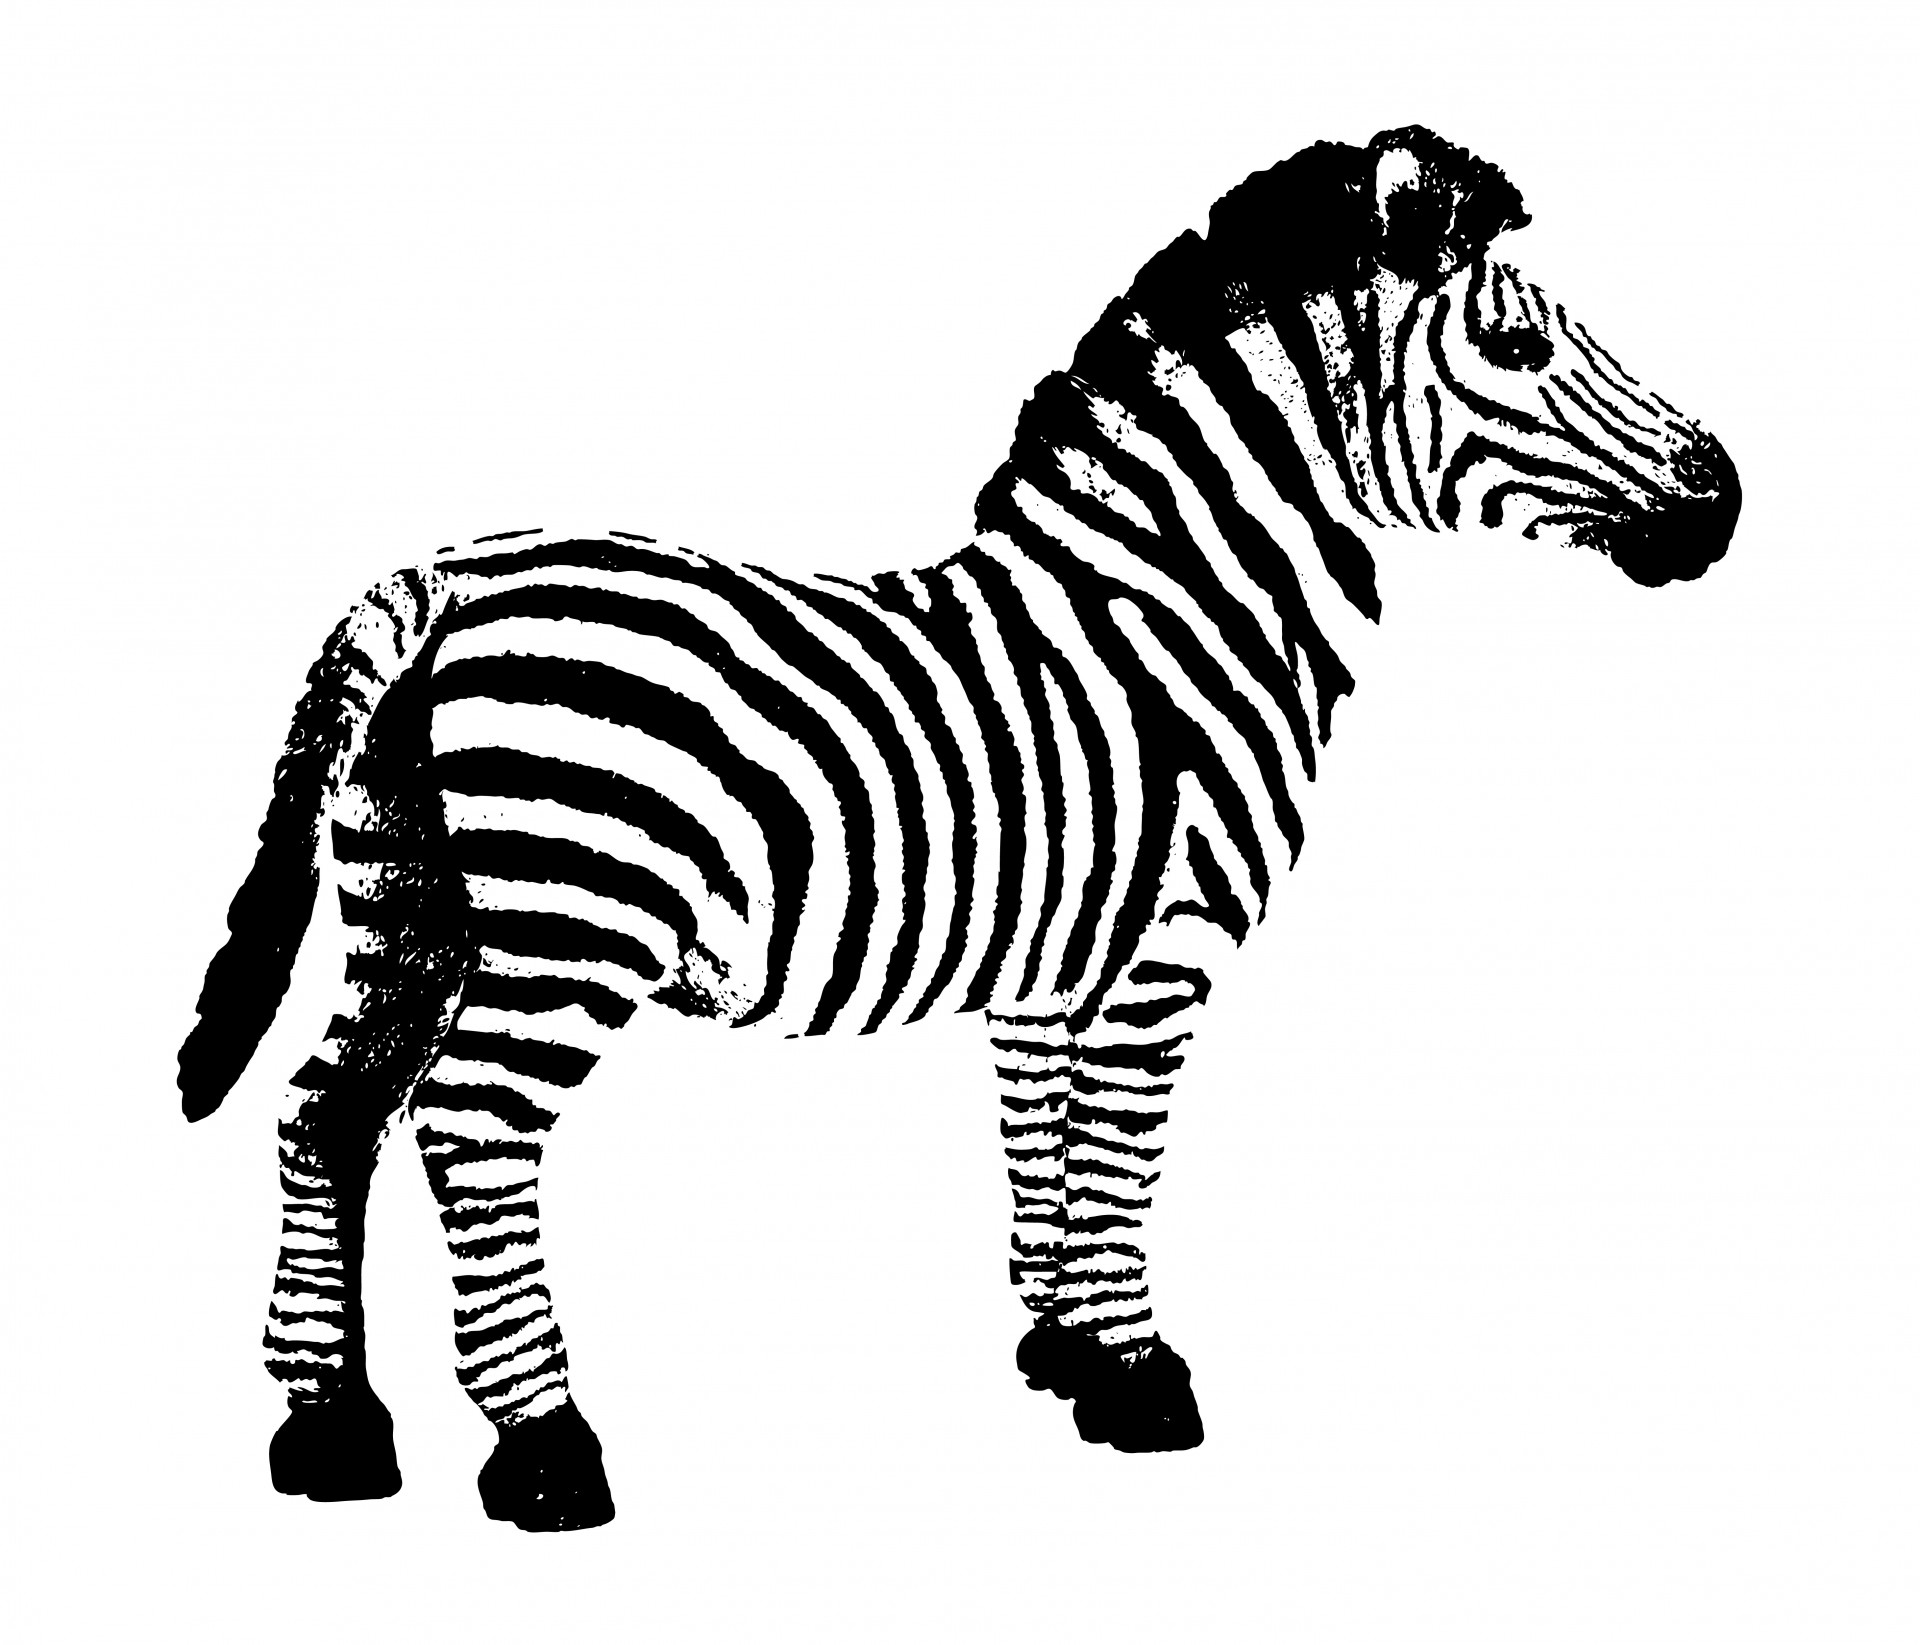 1920x1645 Zebra clipart free stock photo public domain pictures